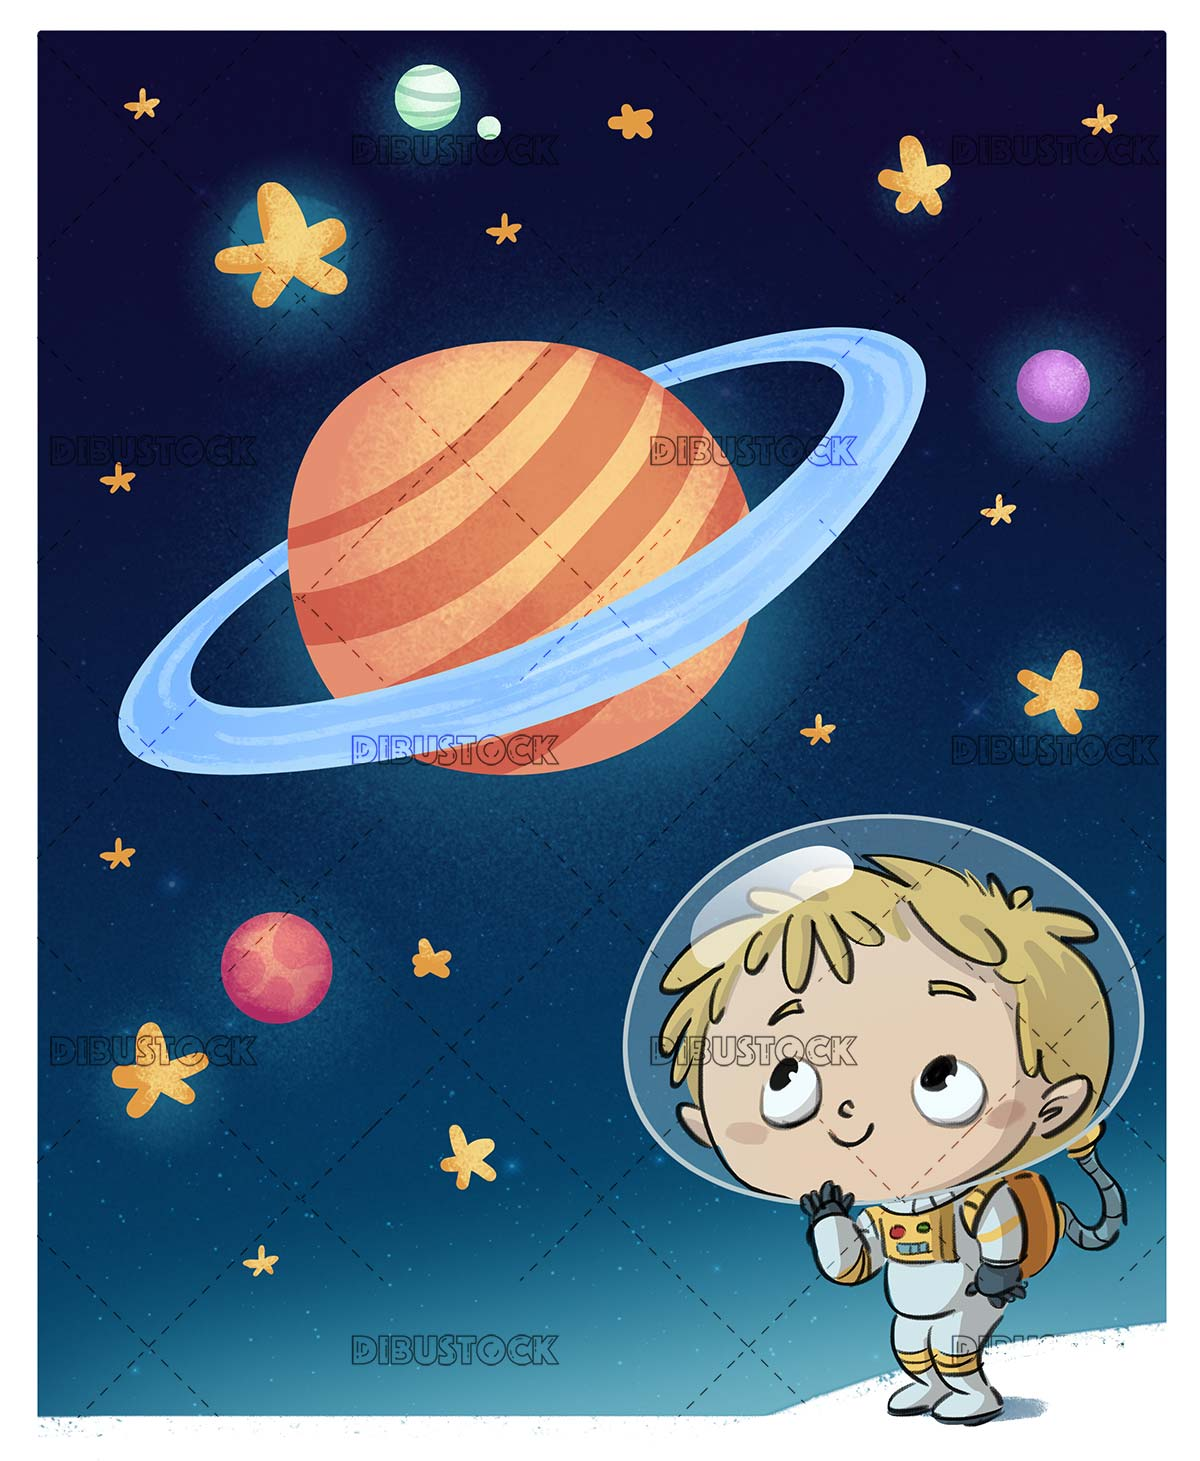 Boy in space suit in space with planets